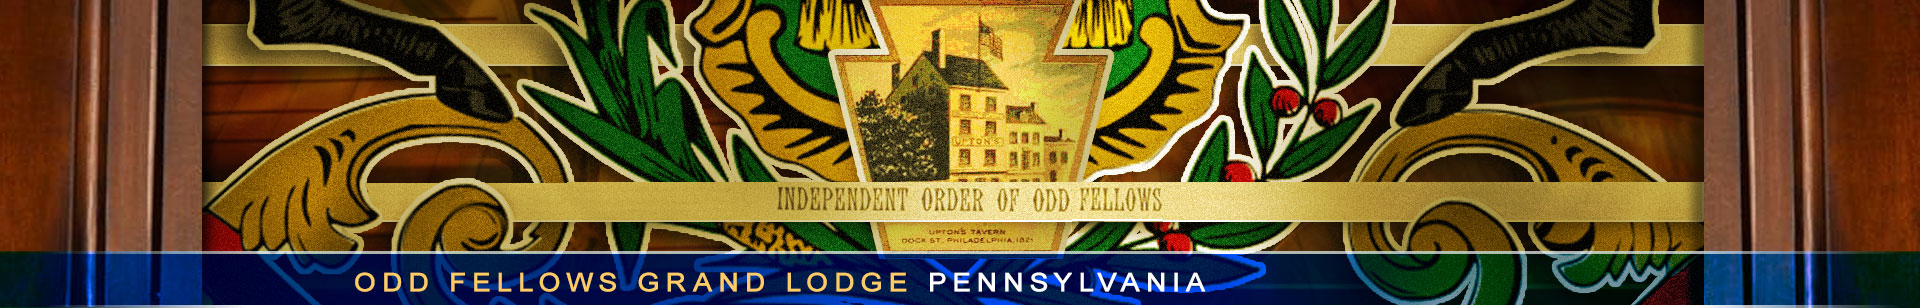 The Pre 1900 History of the odd fellows, PA Grand Lodge.